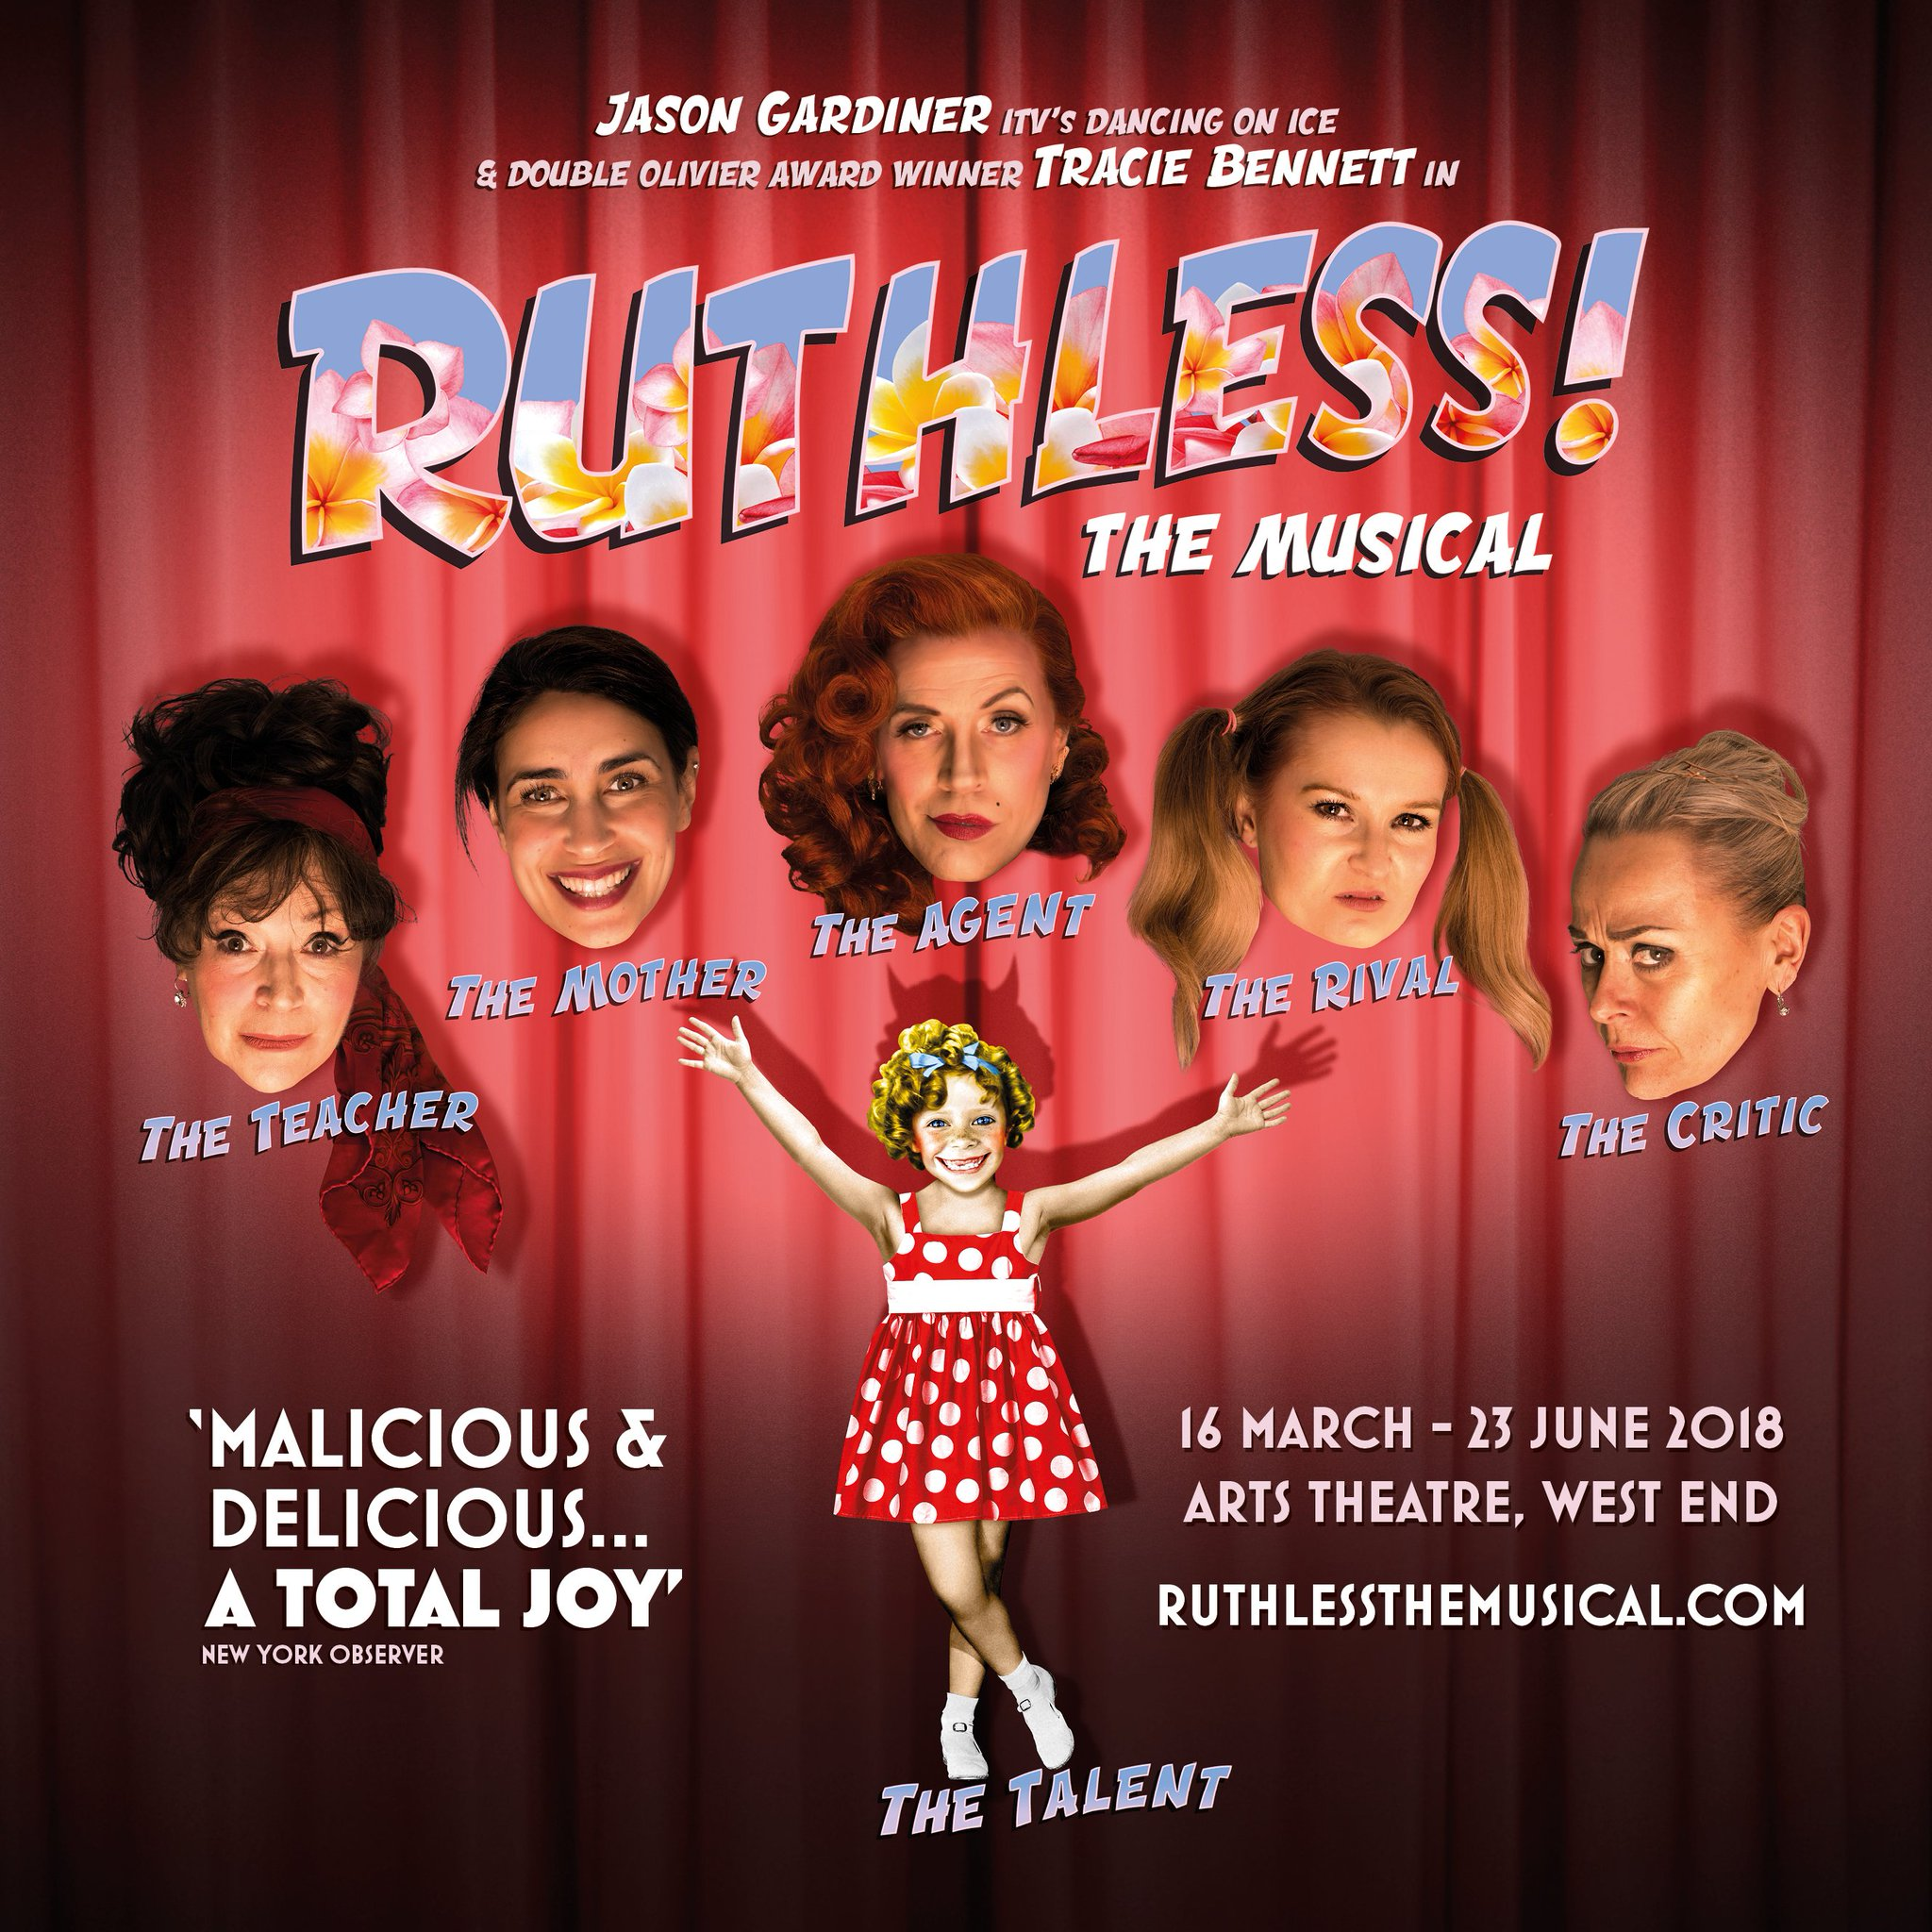 RT @ArtsTheatreLDN: Not one but TWO chances to catch @RuthlessMusical today https://t.co/C7FLW1r2om https://t.co/Z4pt2XqnqX